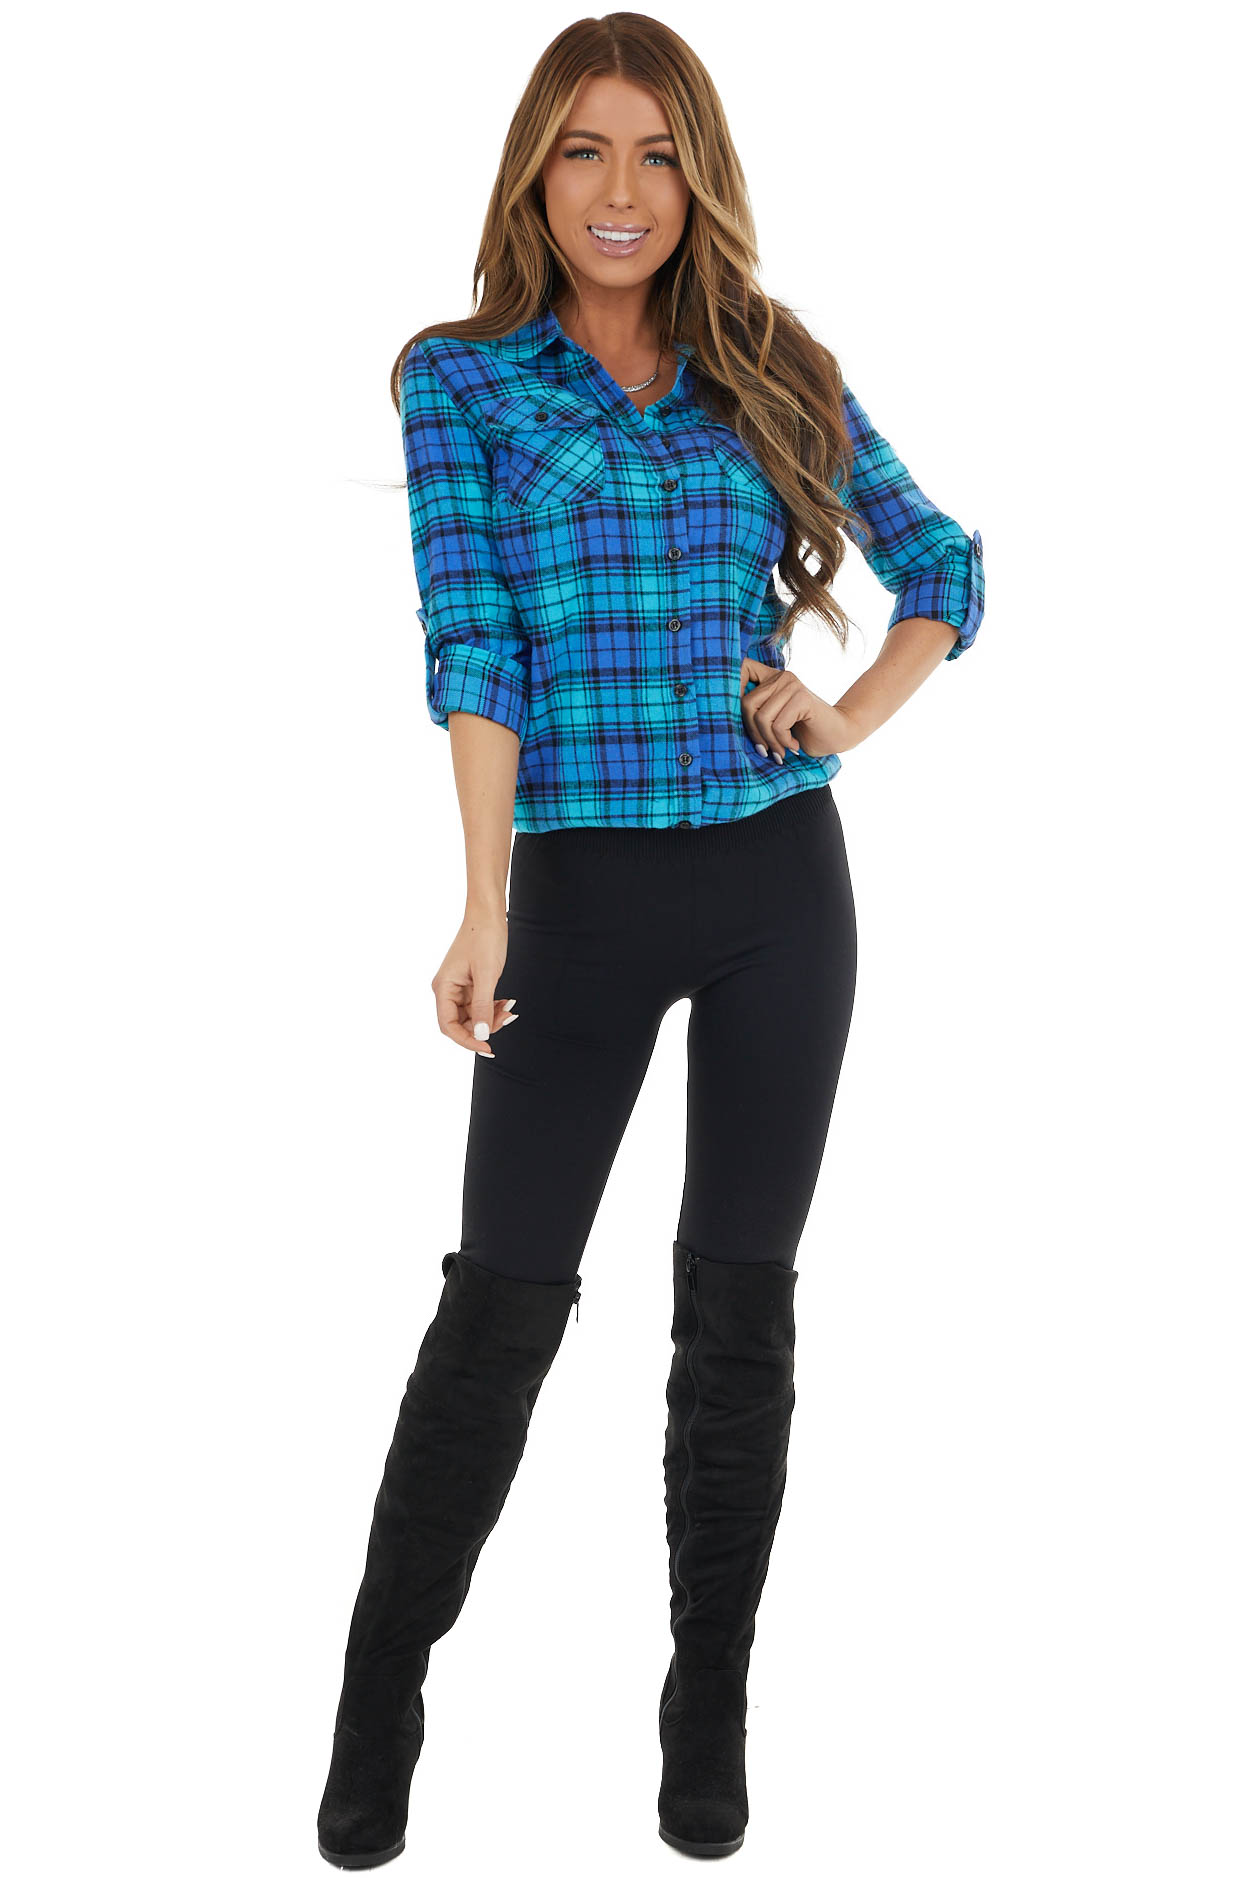 Cornflower and Aqua Plaid Button Up Top with Front Pockets